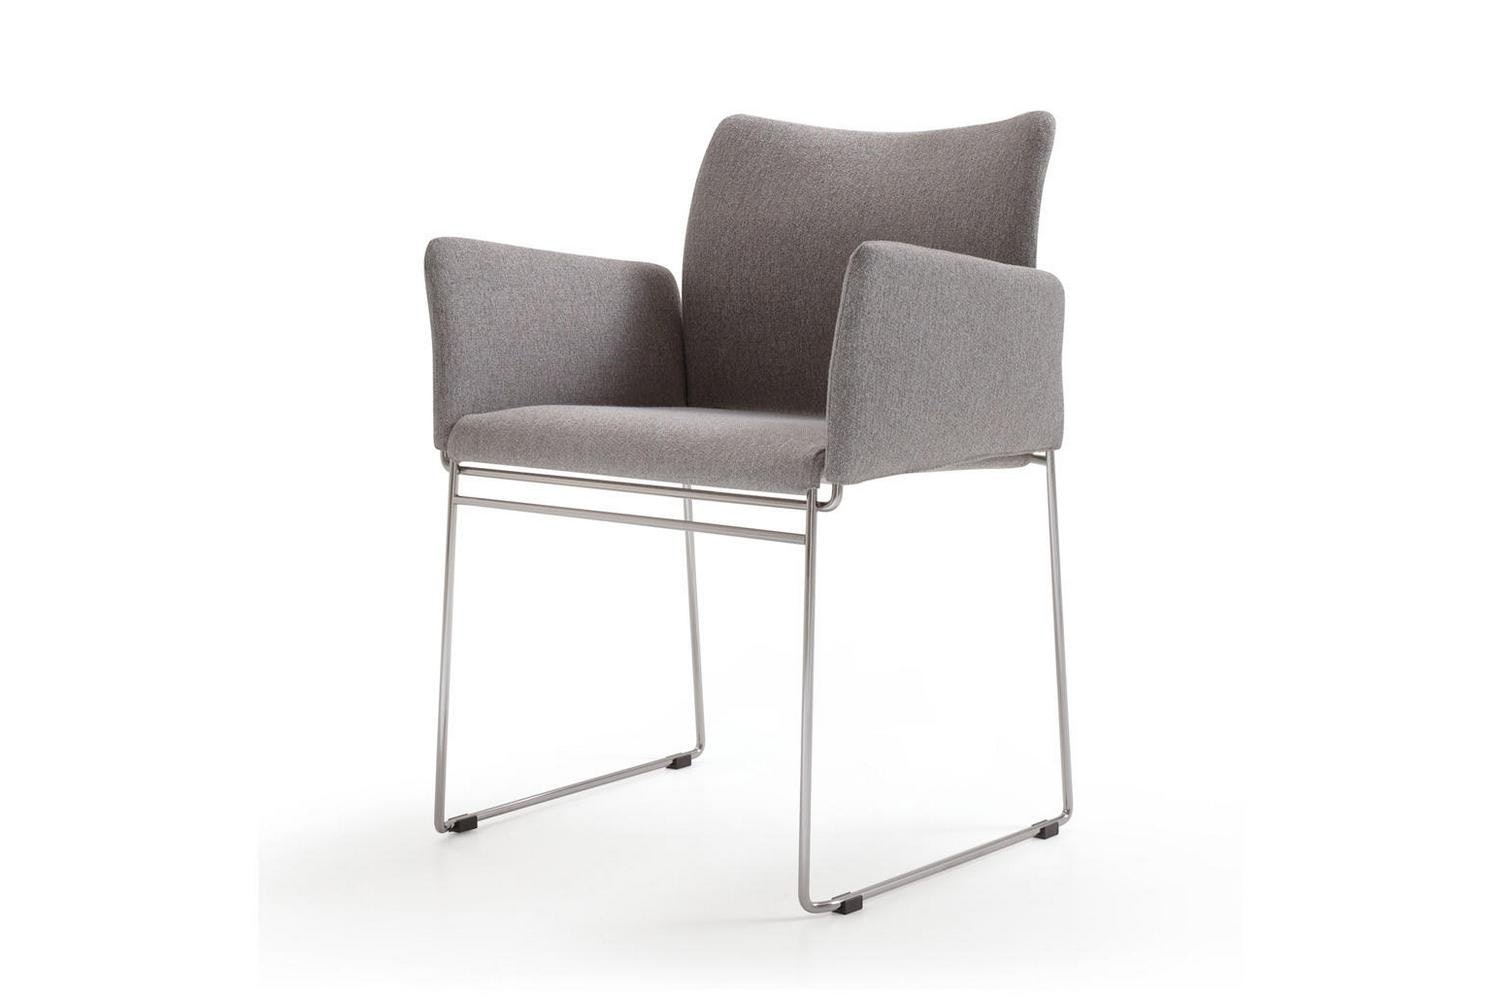 W57 Ljin LG Chair by Kazuhide Takahama for Cassina